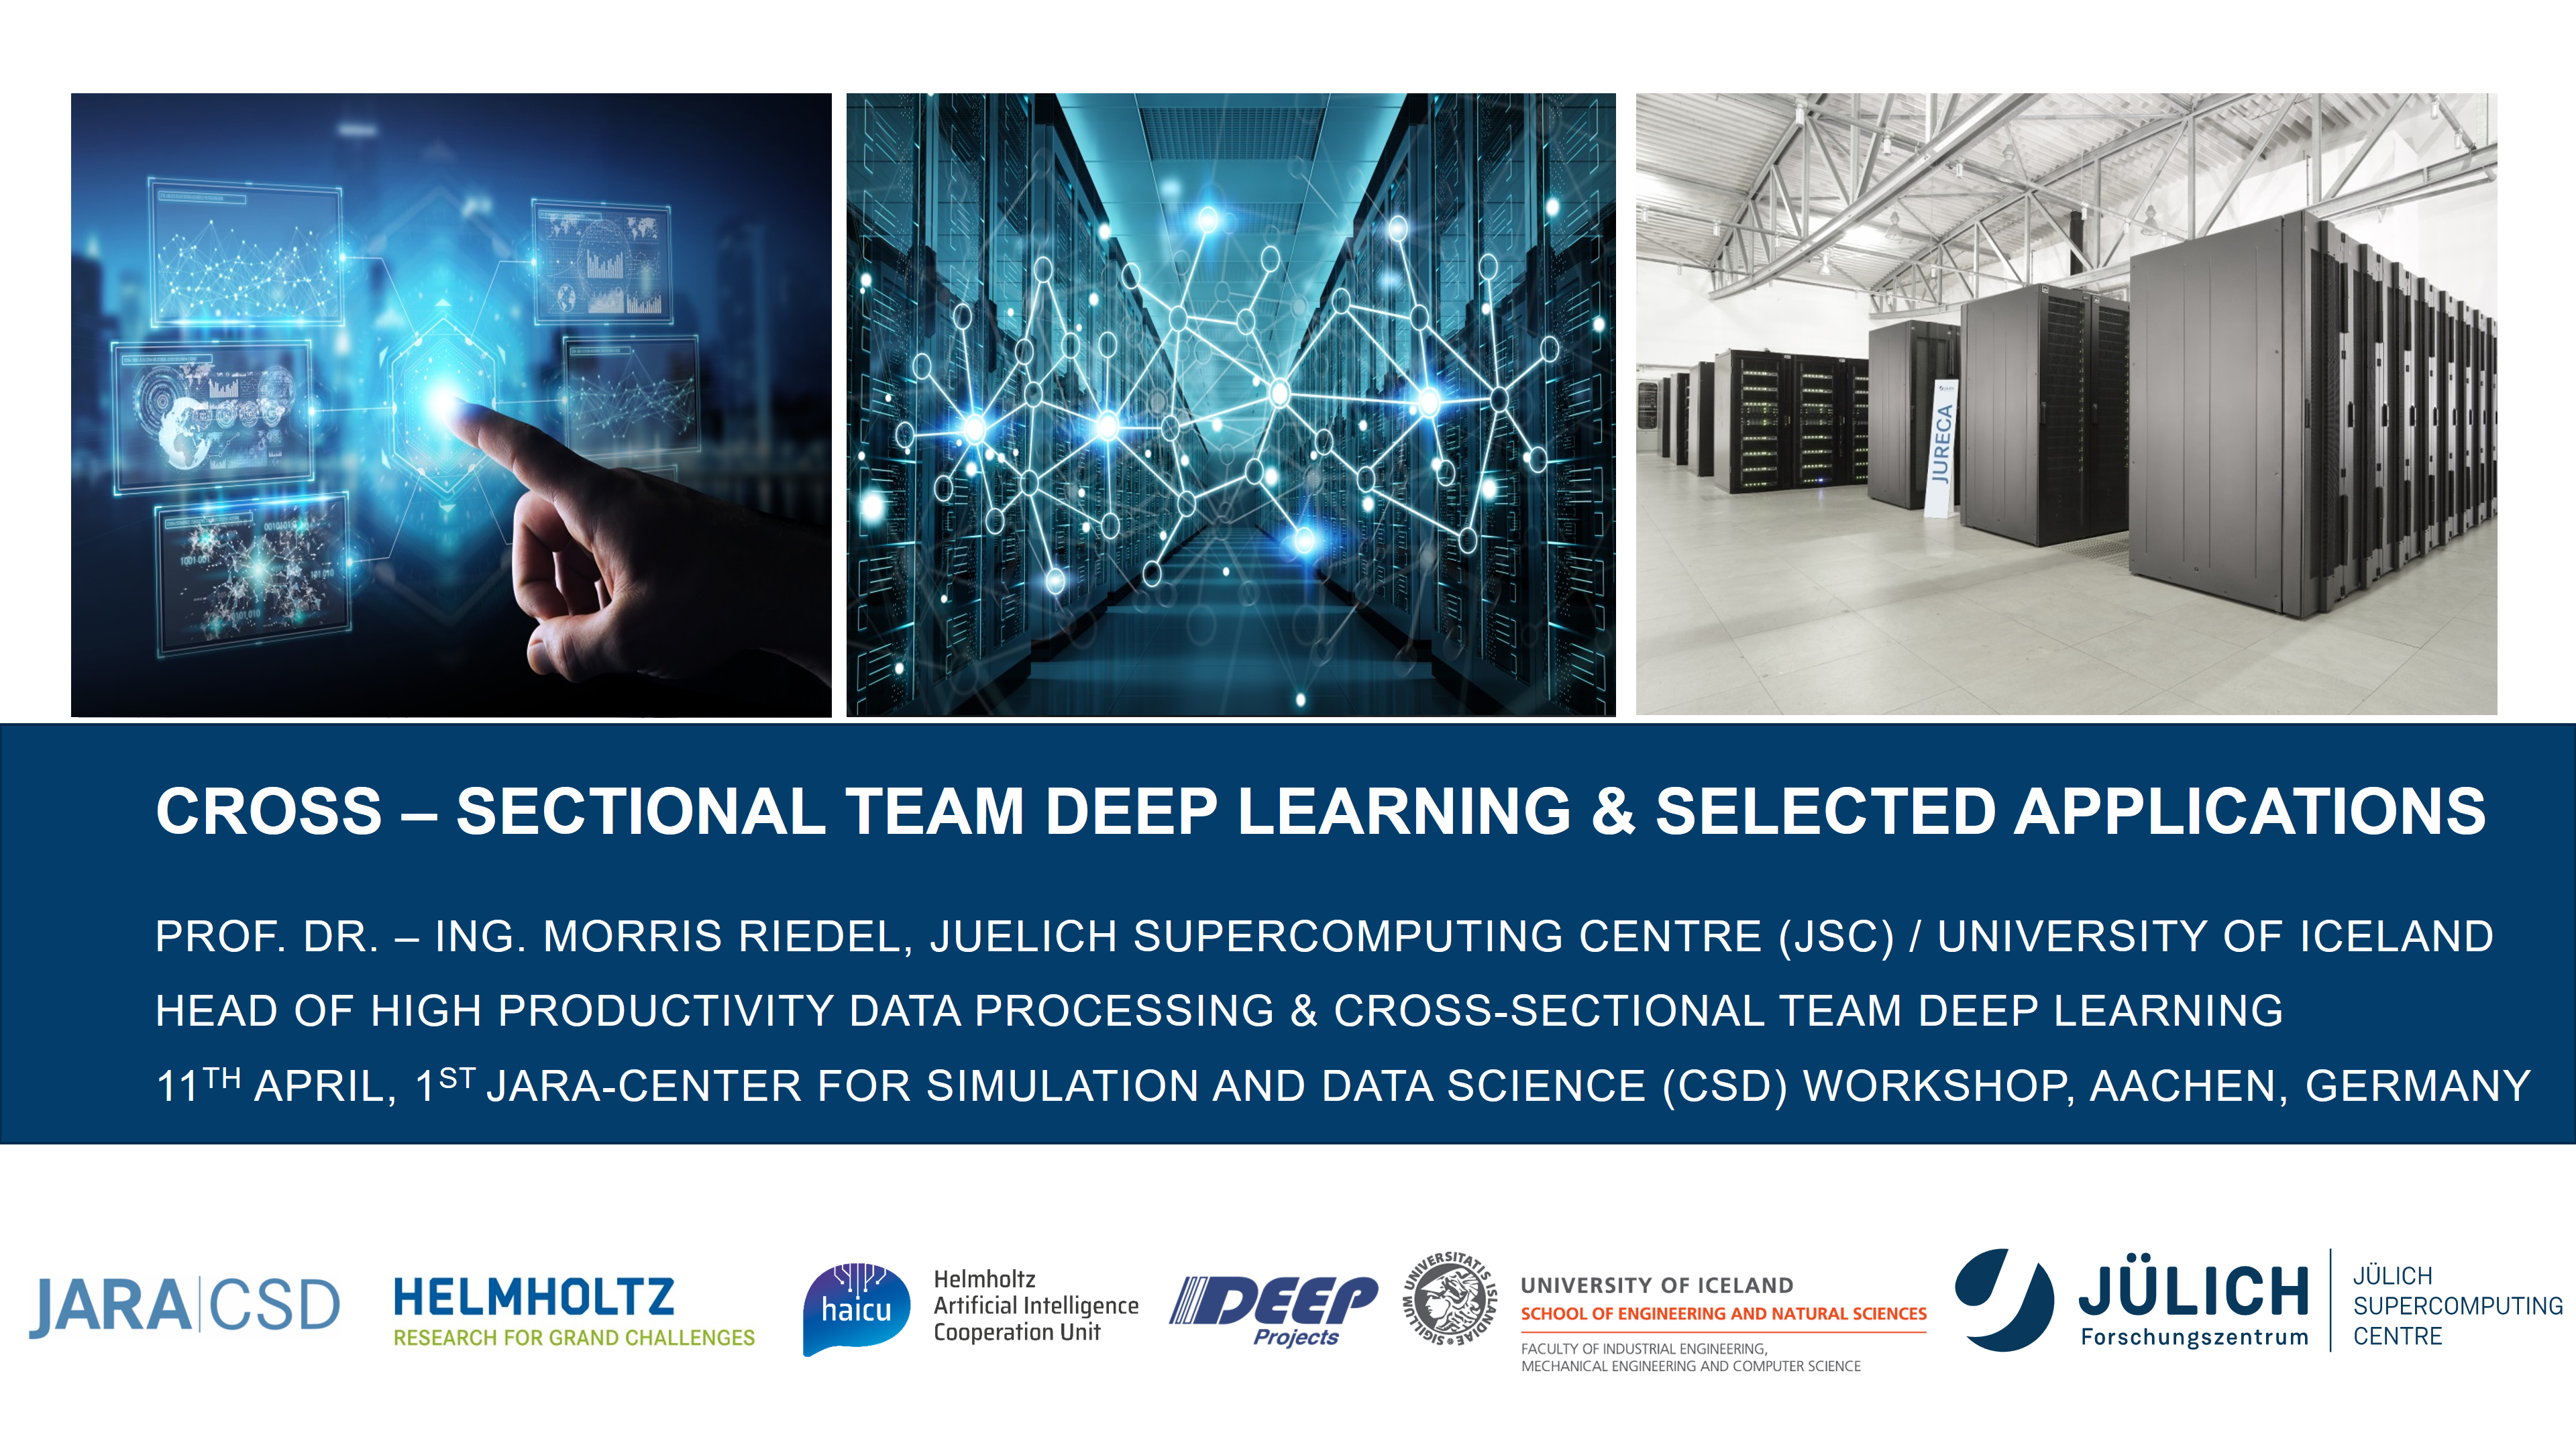 JARA CSD CST Deep Learning Selected Applications